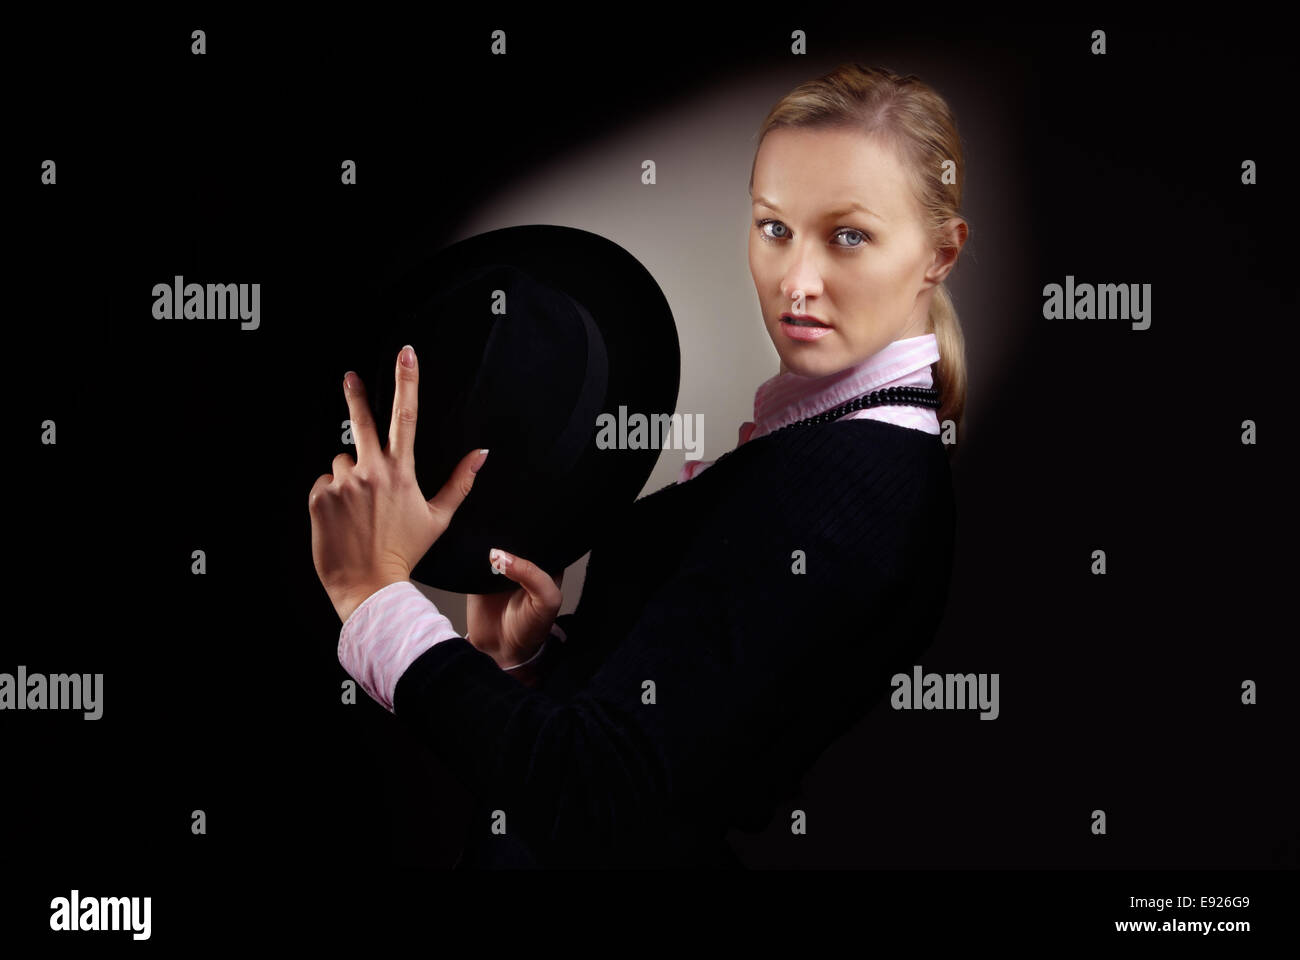 Female gangster - Stock Image